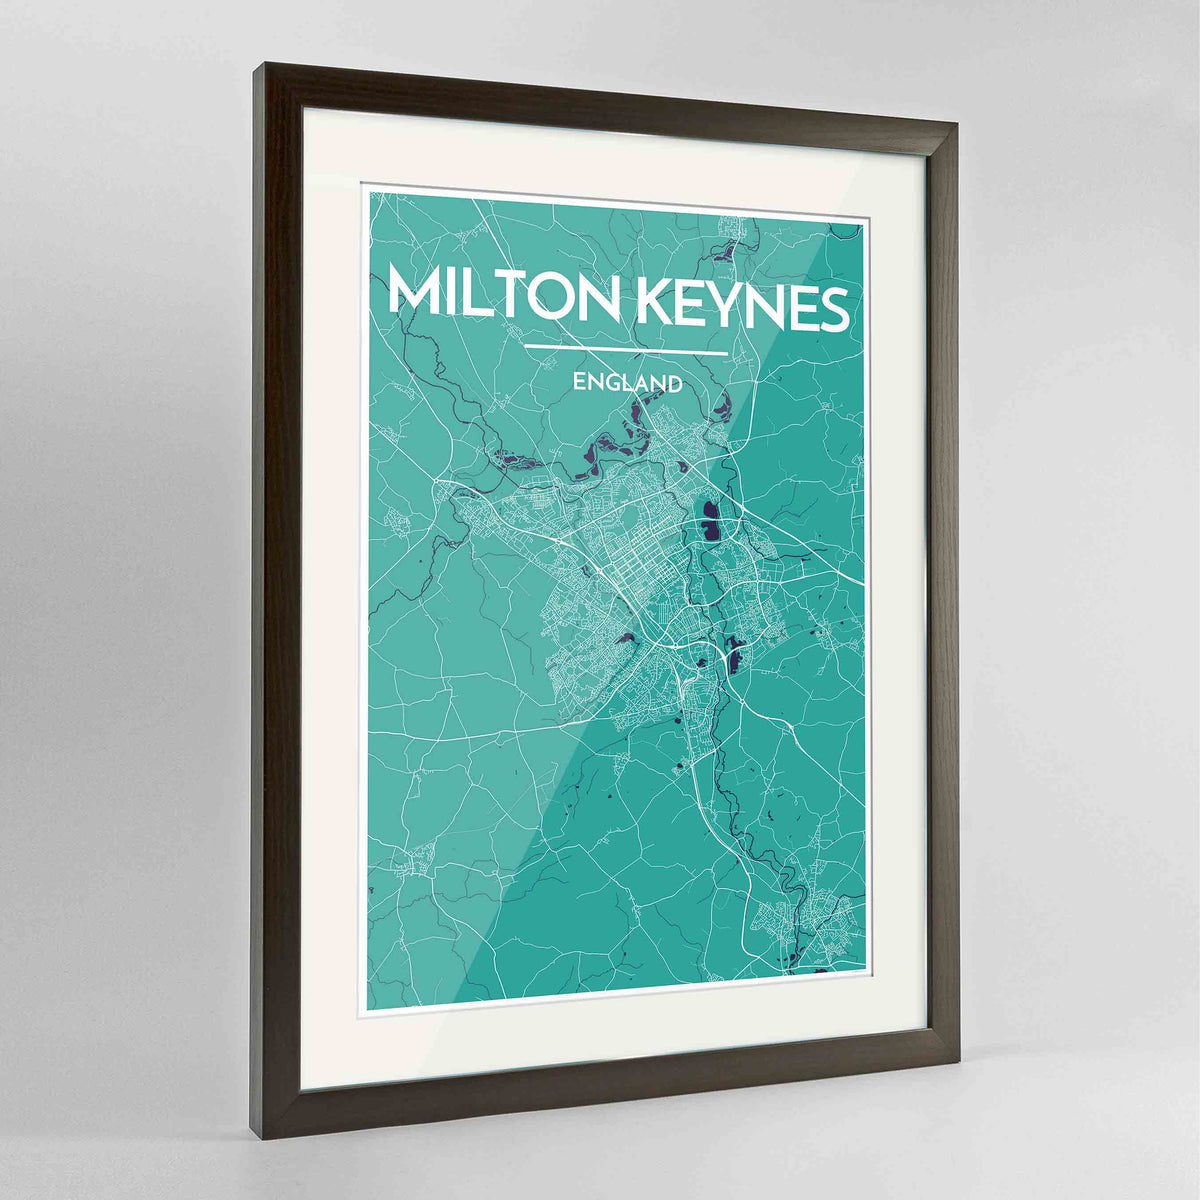 "Framed Milton Keynes Map Art Print 24x36"" Contemporary Walnut frame Point Two Design Group"